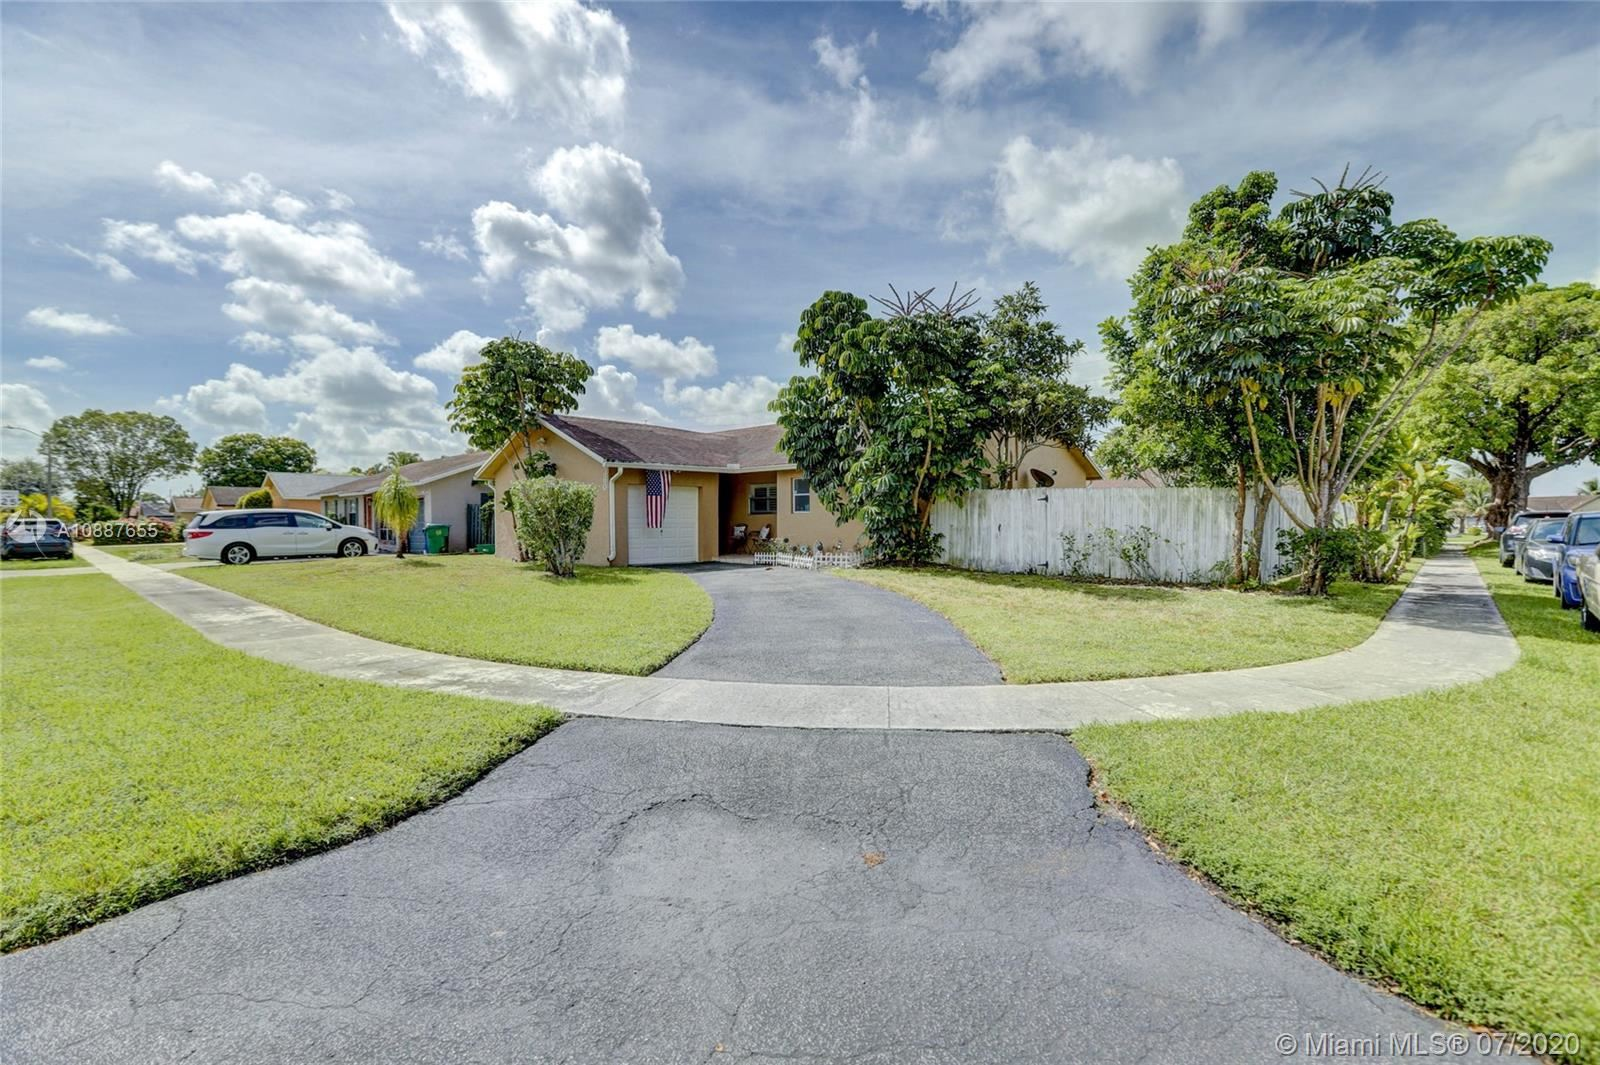 8360 NW 47th Ct, Lauderhill, FL 33351 - #: A10887655